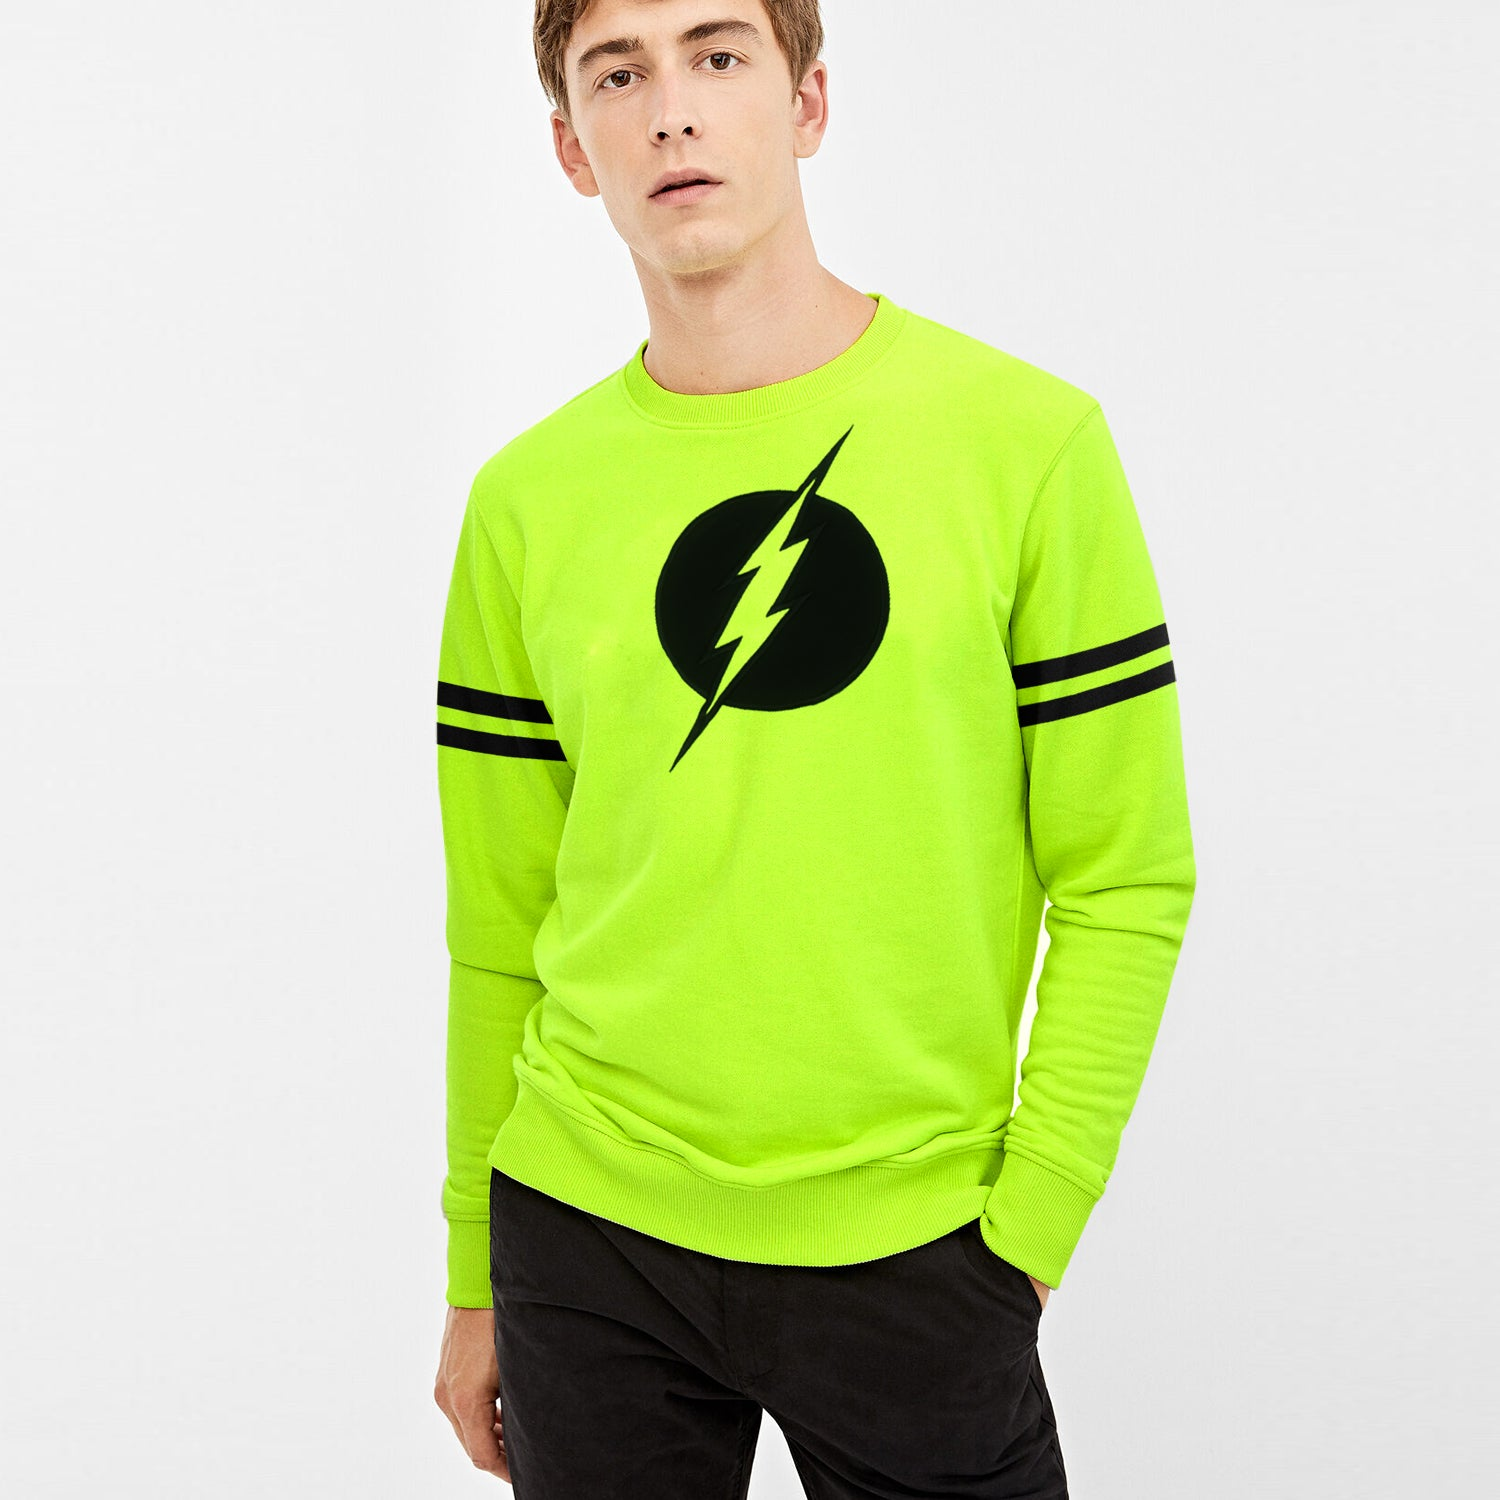 New York Popular Fleece Black Embroider Print Sweatshirt For Men-Lime Green-BE10419